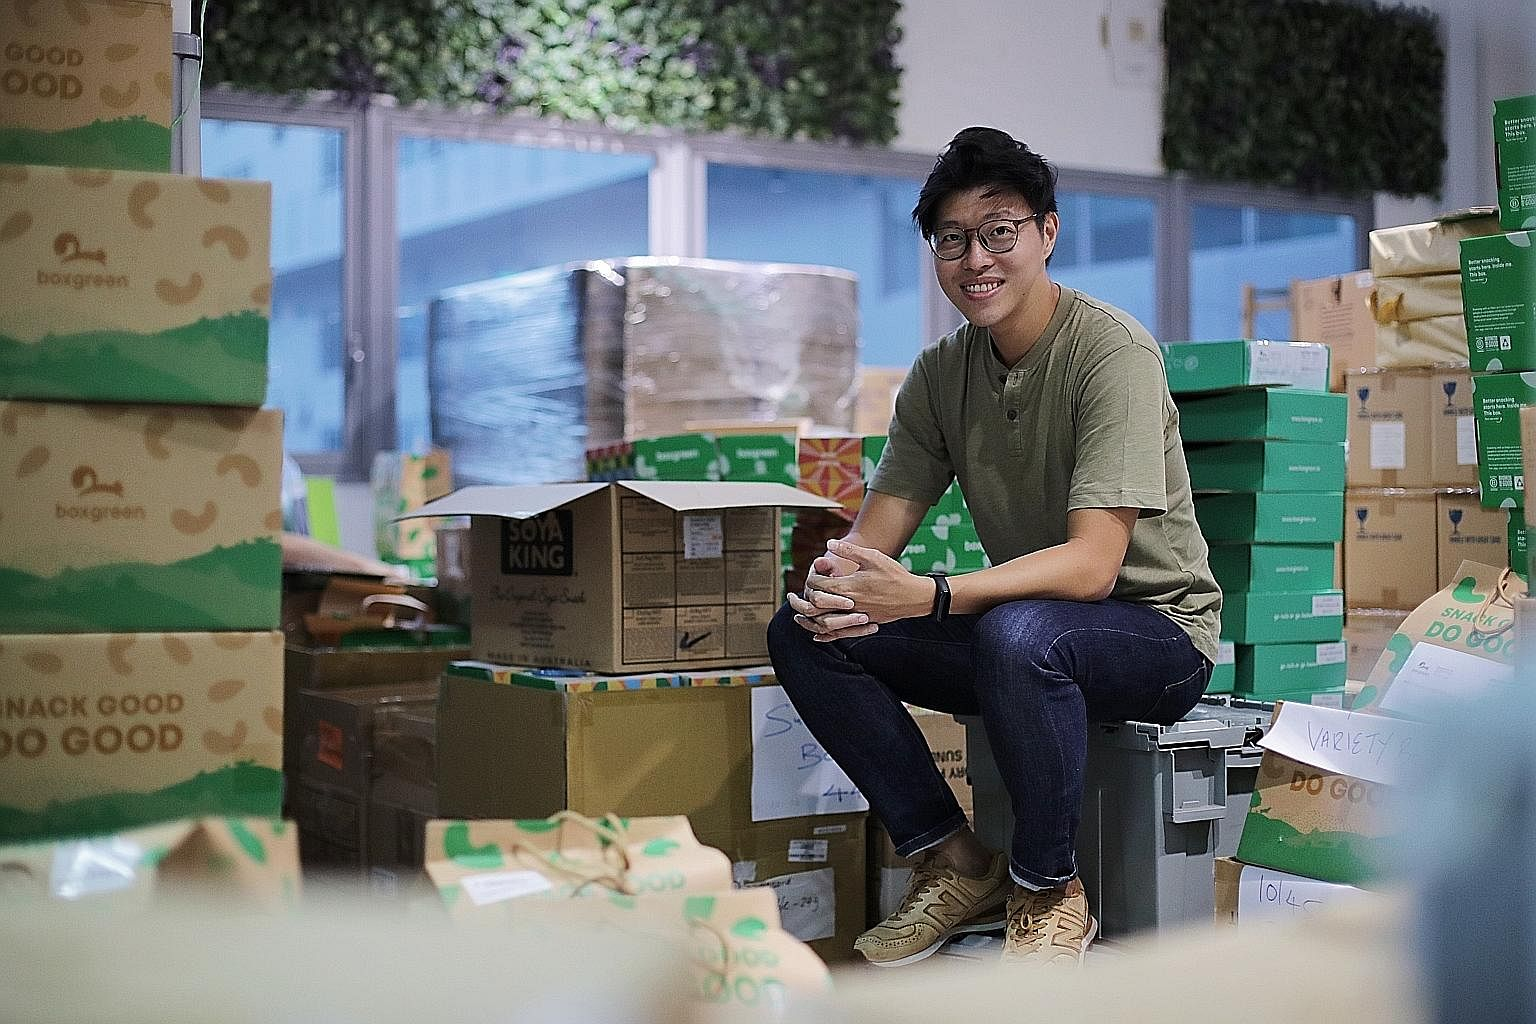 Food service BoxGreen, which Mr Walter Oh co-founded, is a B-corp certified business, which means it uses business as a force for good.